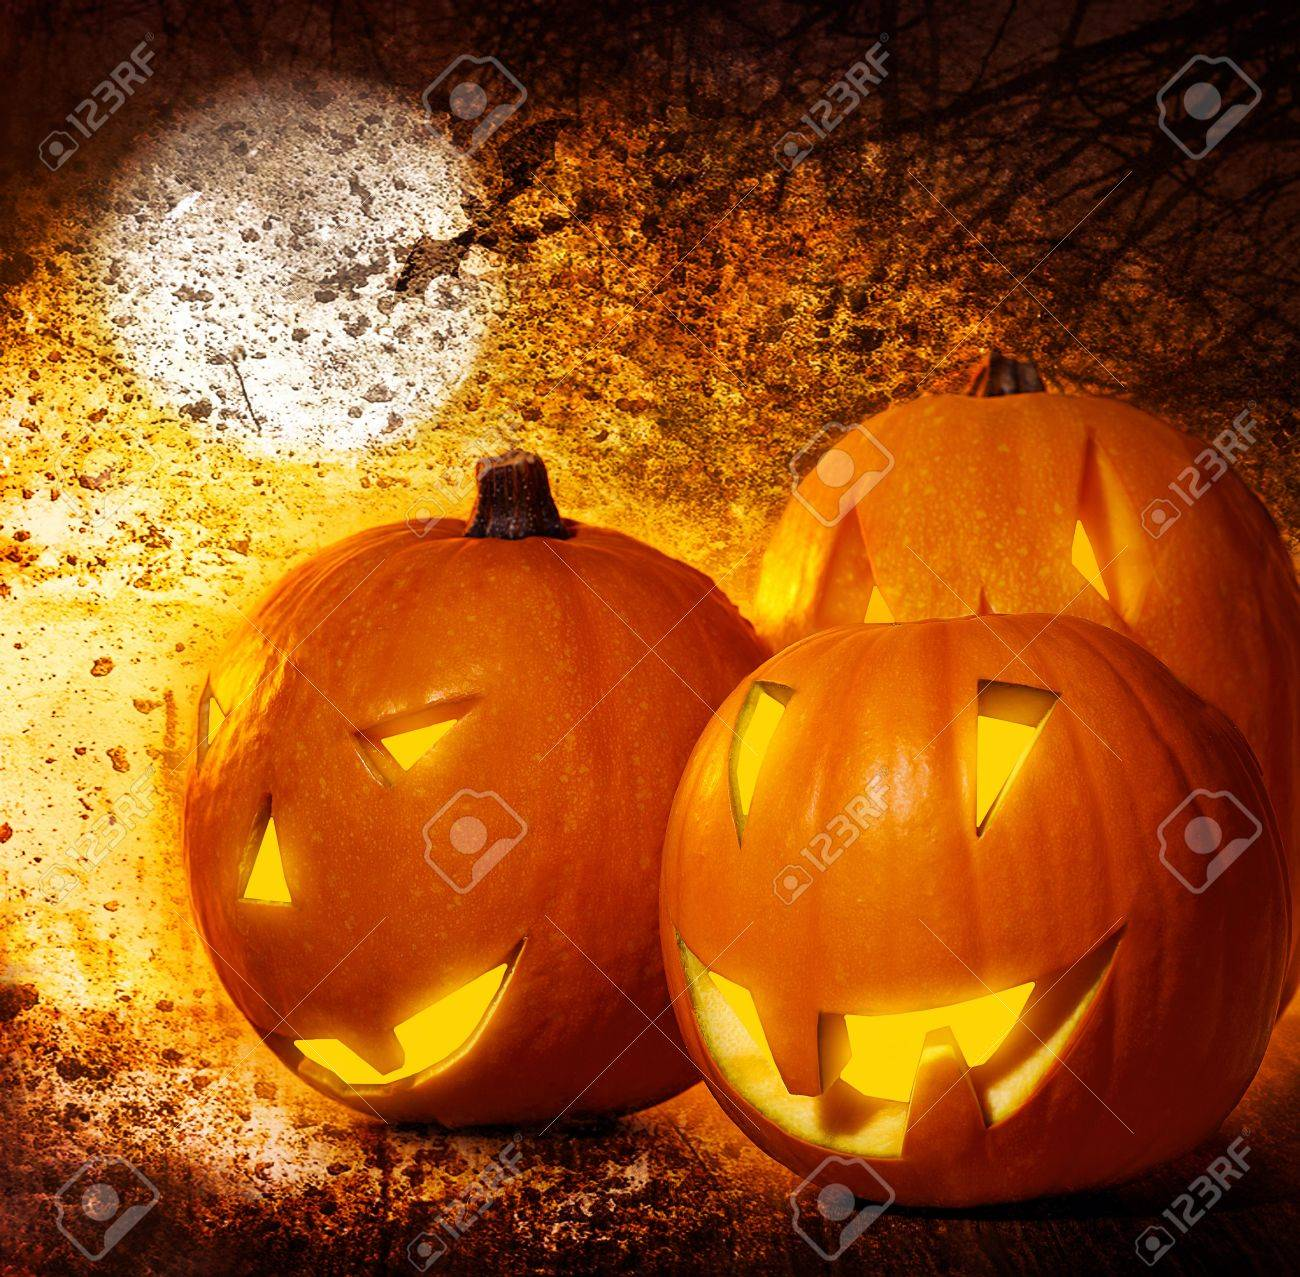 Grunge Halloween background, pumpkins on the cemetery at night, scary spooky decoration, autumn holiday Stock Photo - 10825102